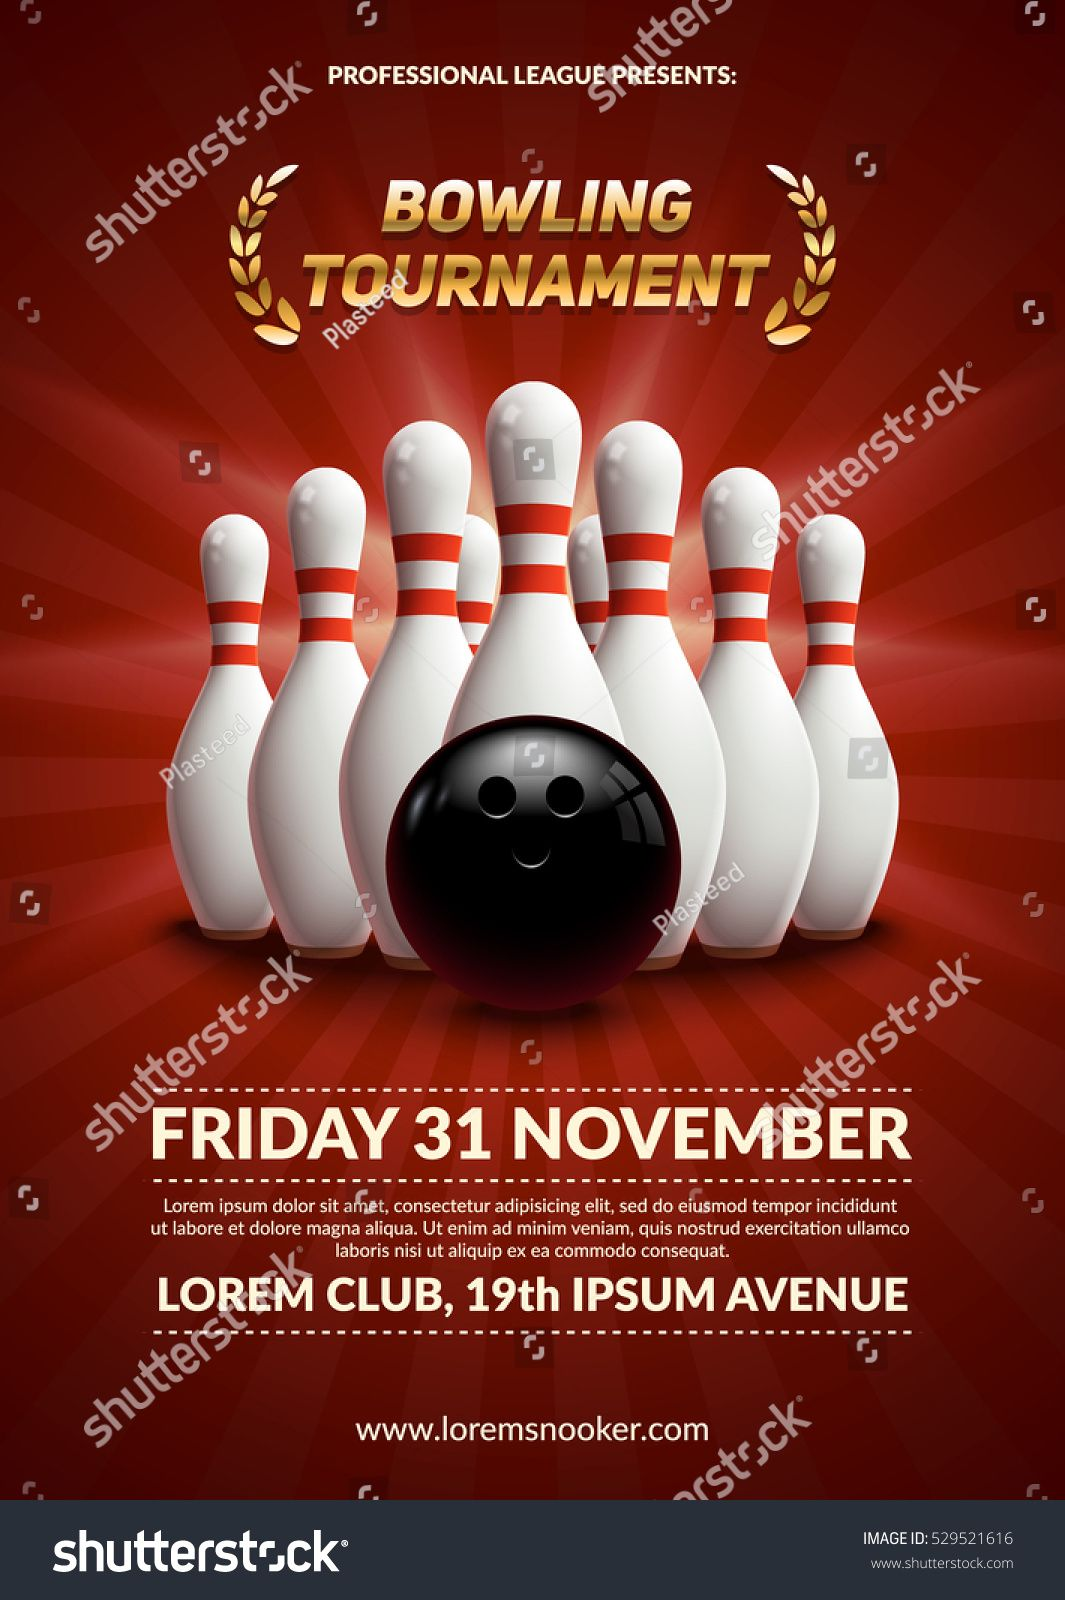 Bowling Tournament Poster 3d Ball And Skittles Composition Eps10 Vector Template Ad Spon Poster Ball Bowling Tourn Bowling Tournament Bowling Skittles